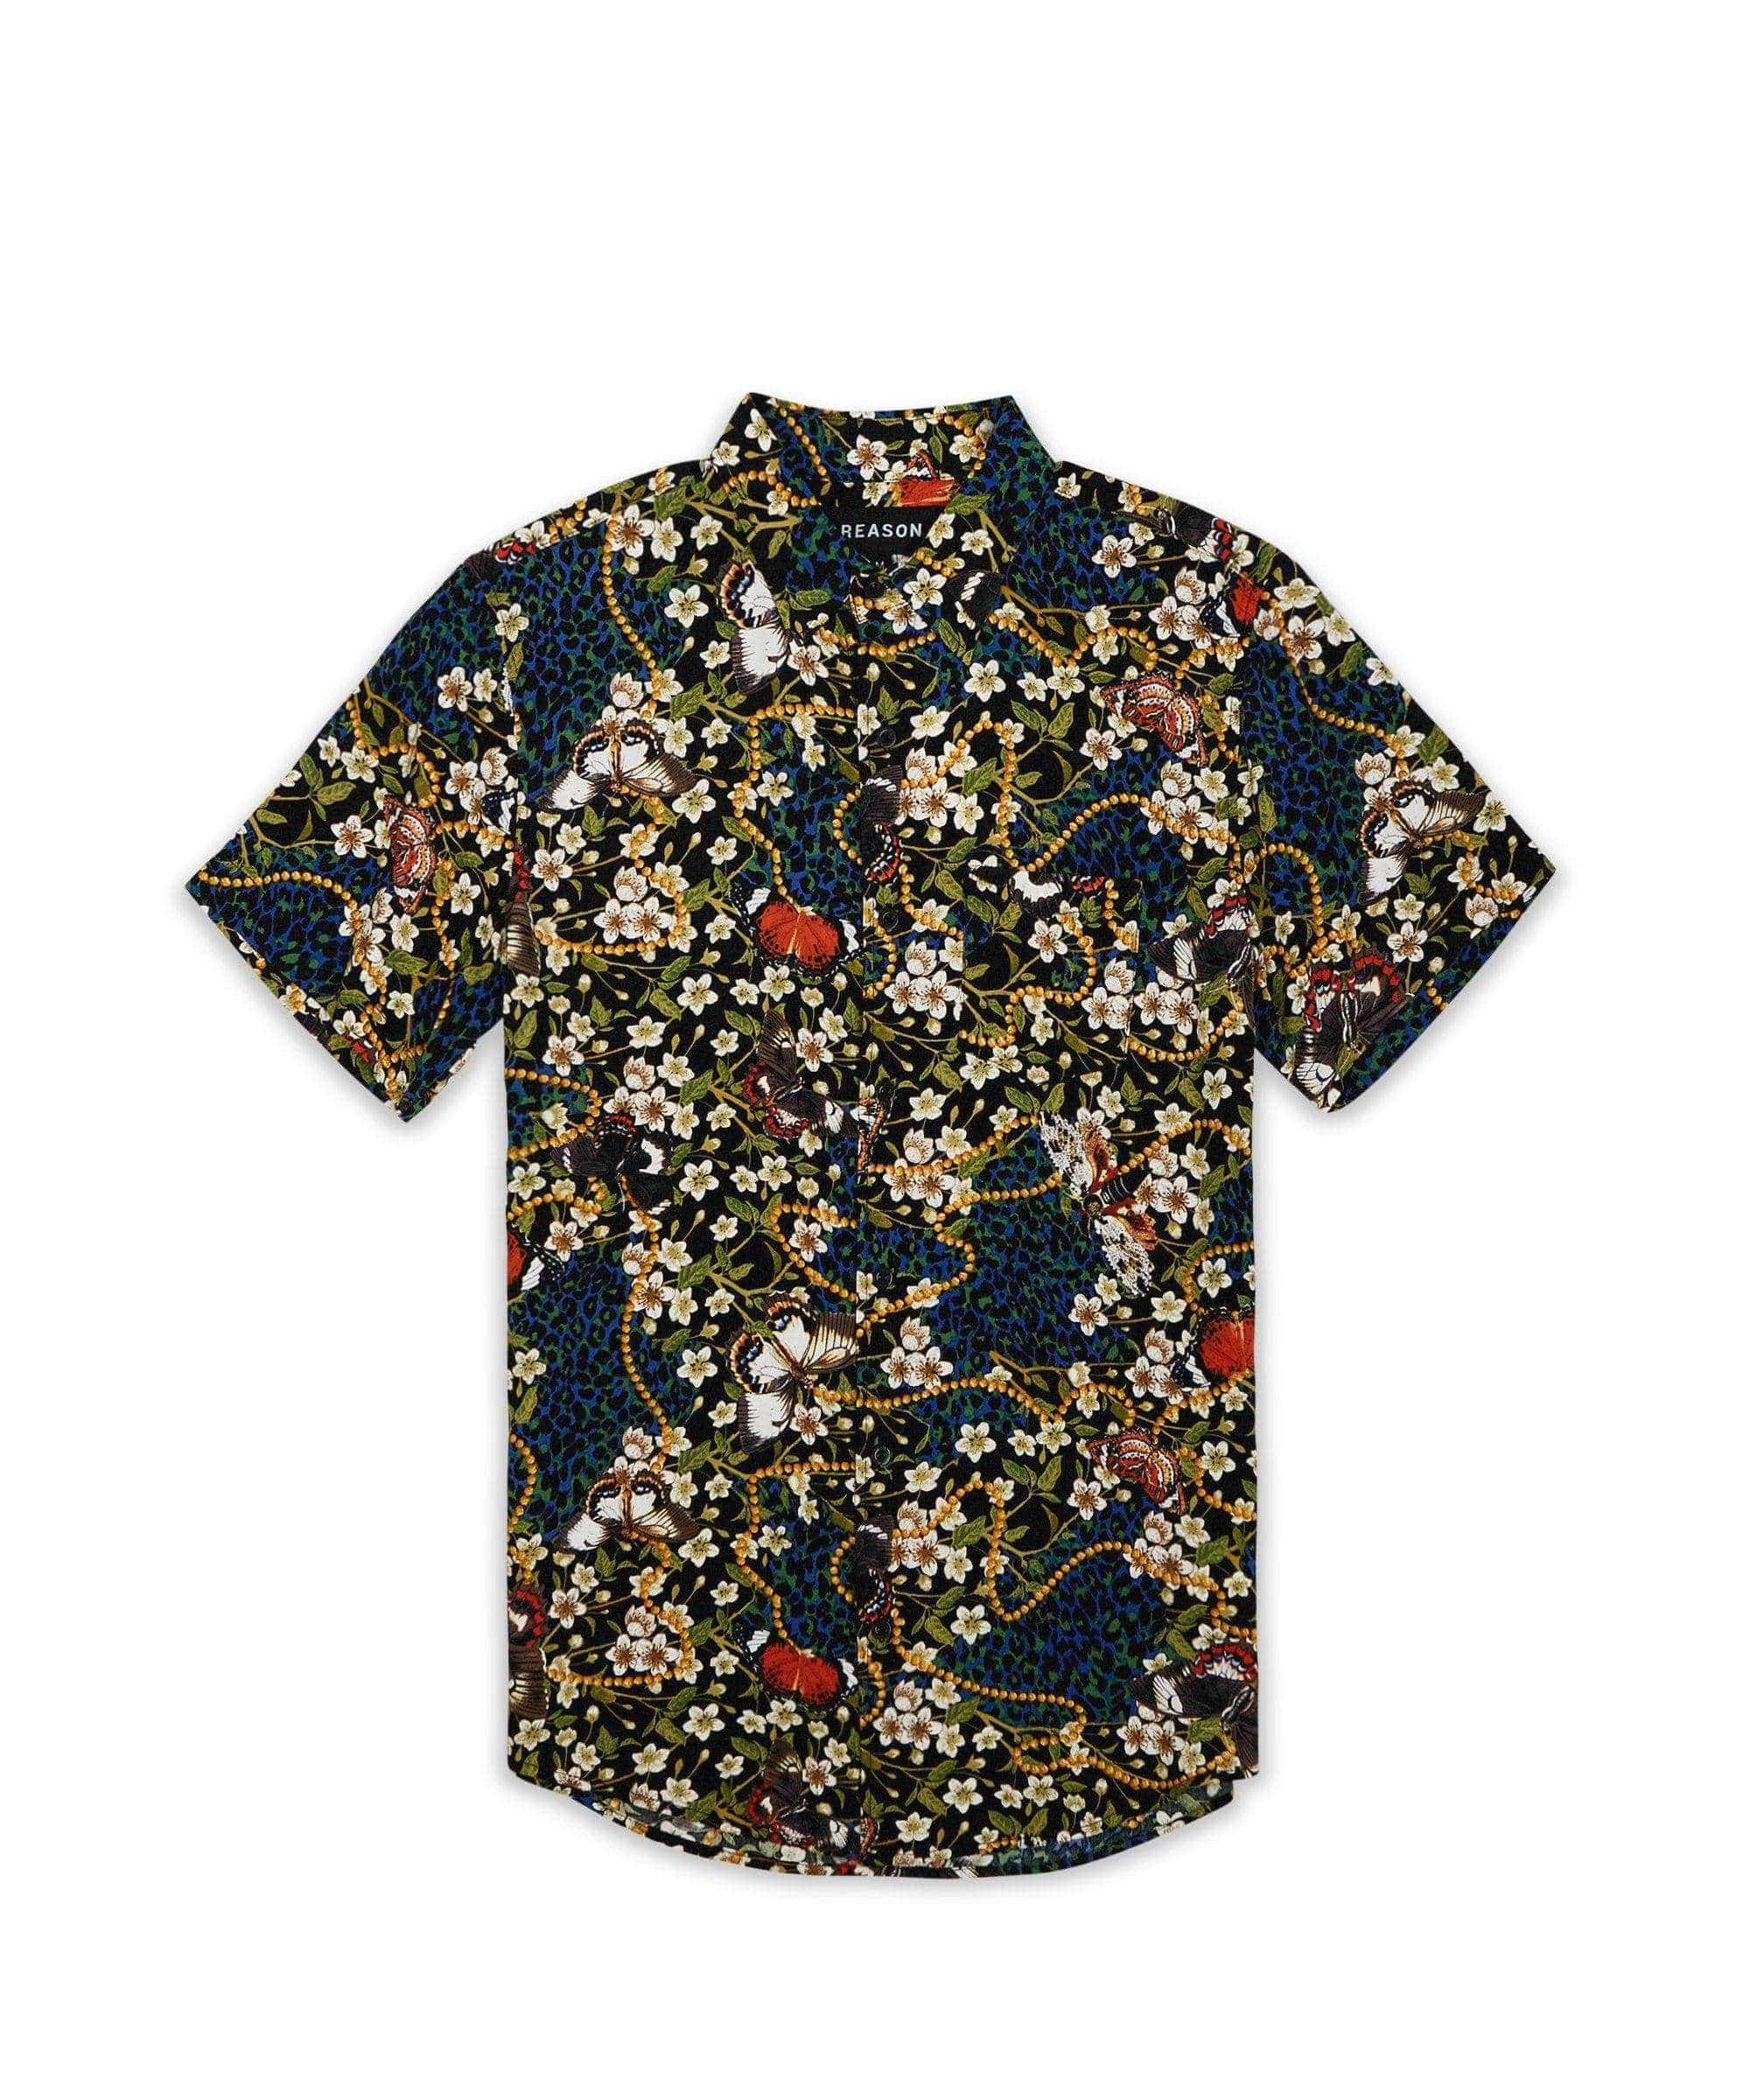 GARDEN SS SHIRT Reason Clothing